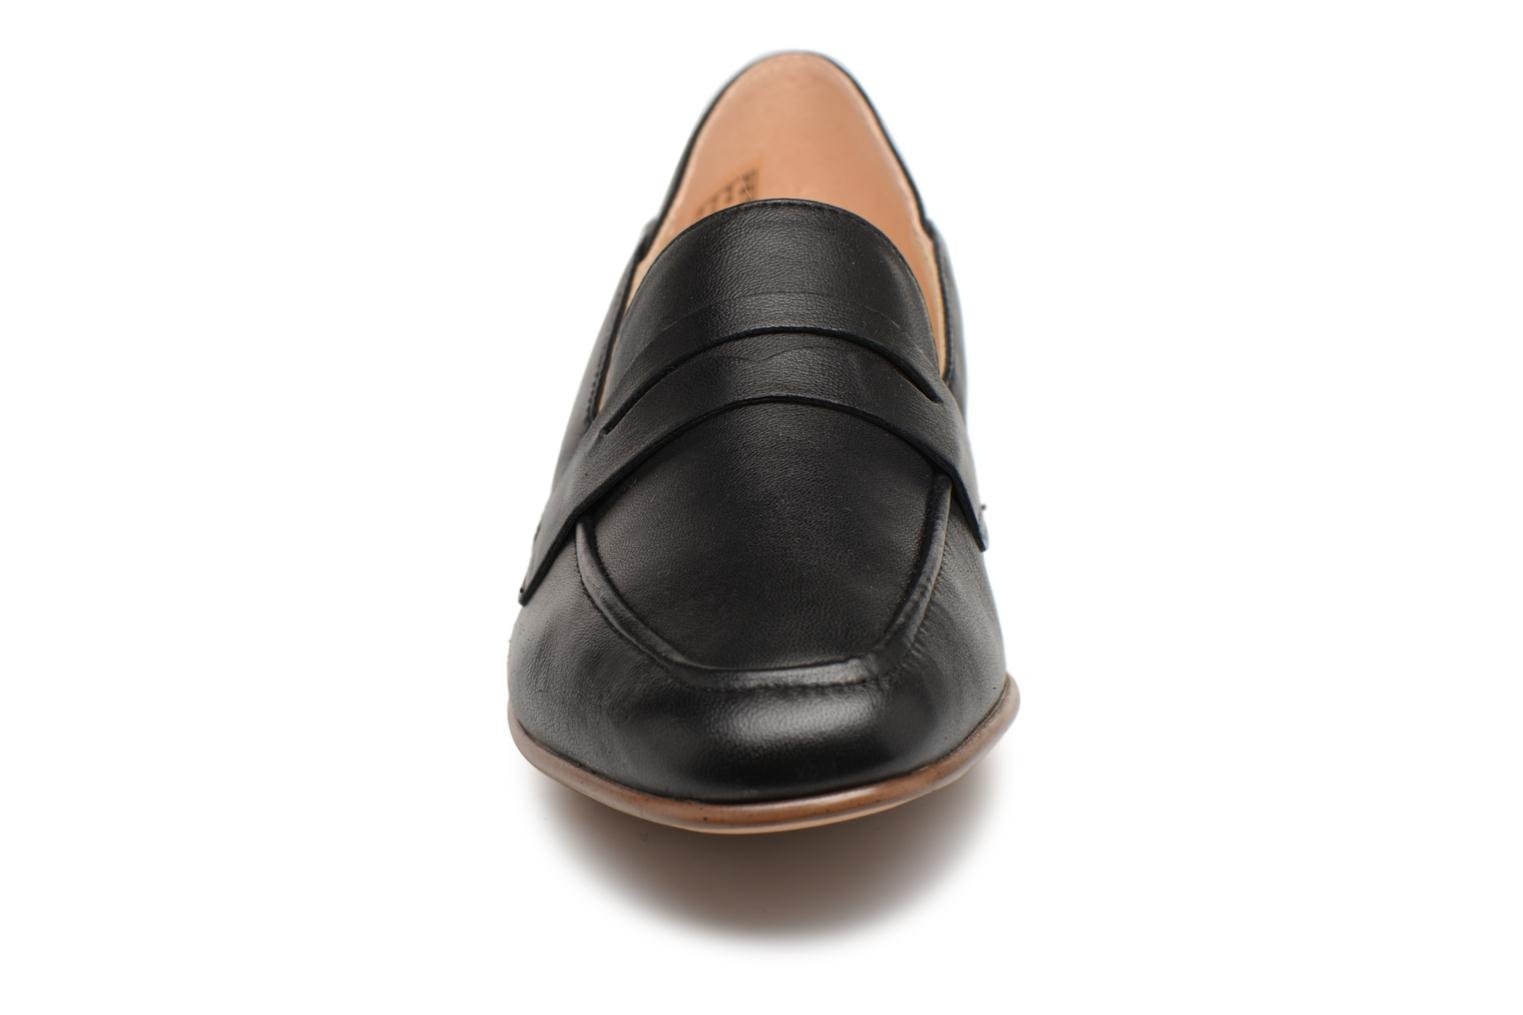 Clarks Pure Leather Black Black Leather Pure Iris Clarks Clarks Pure Iris wSIPnPt